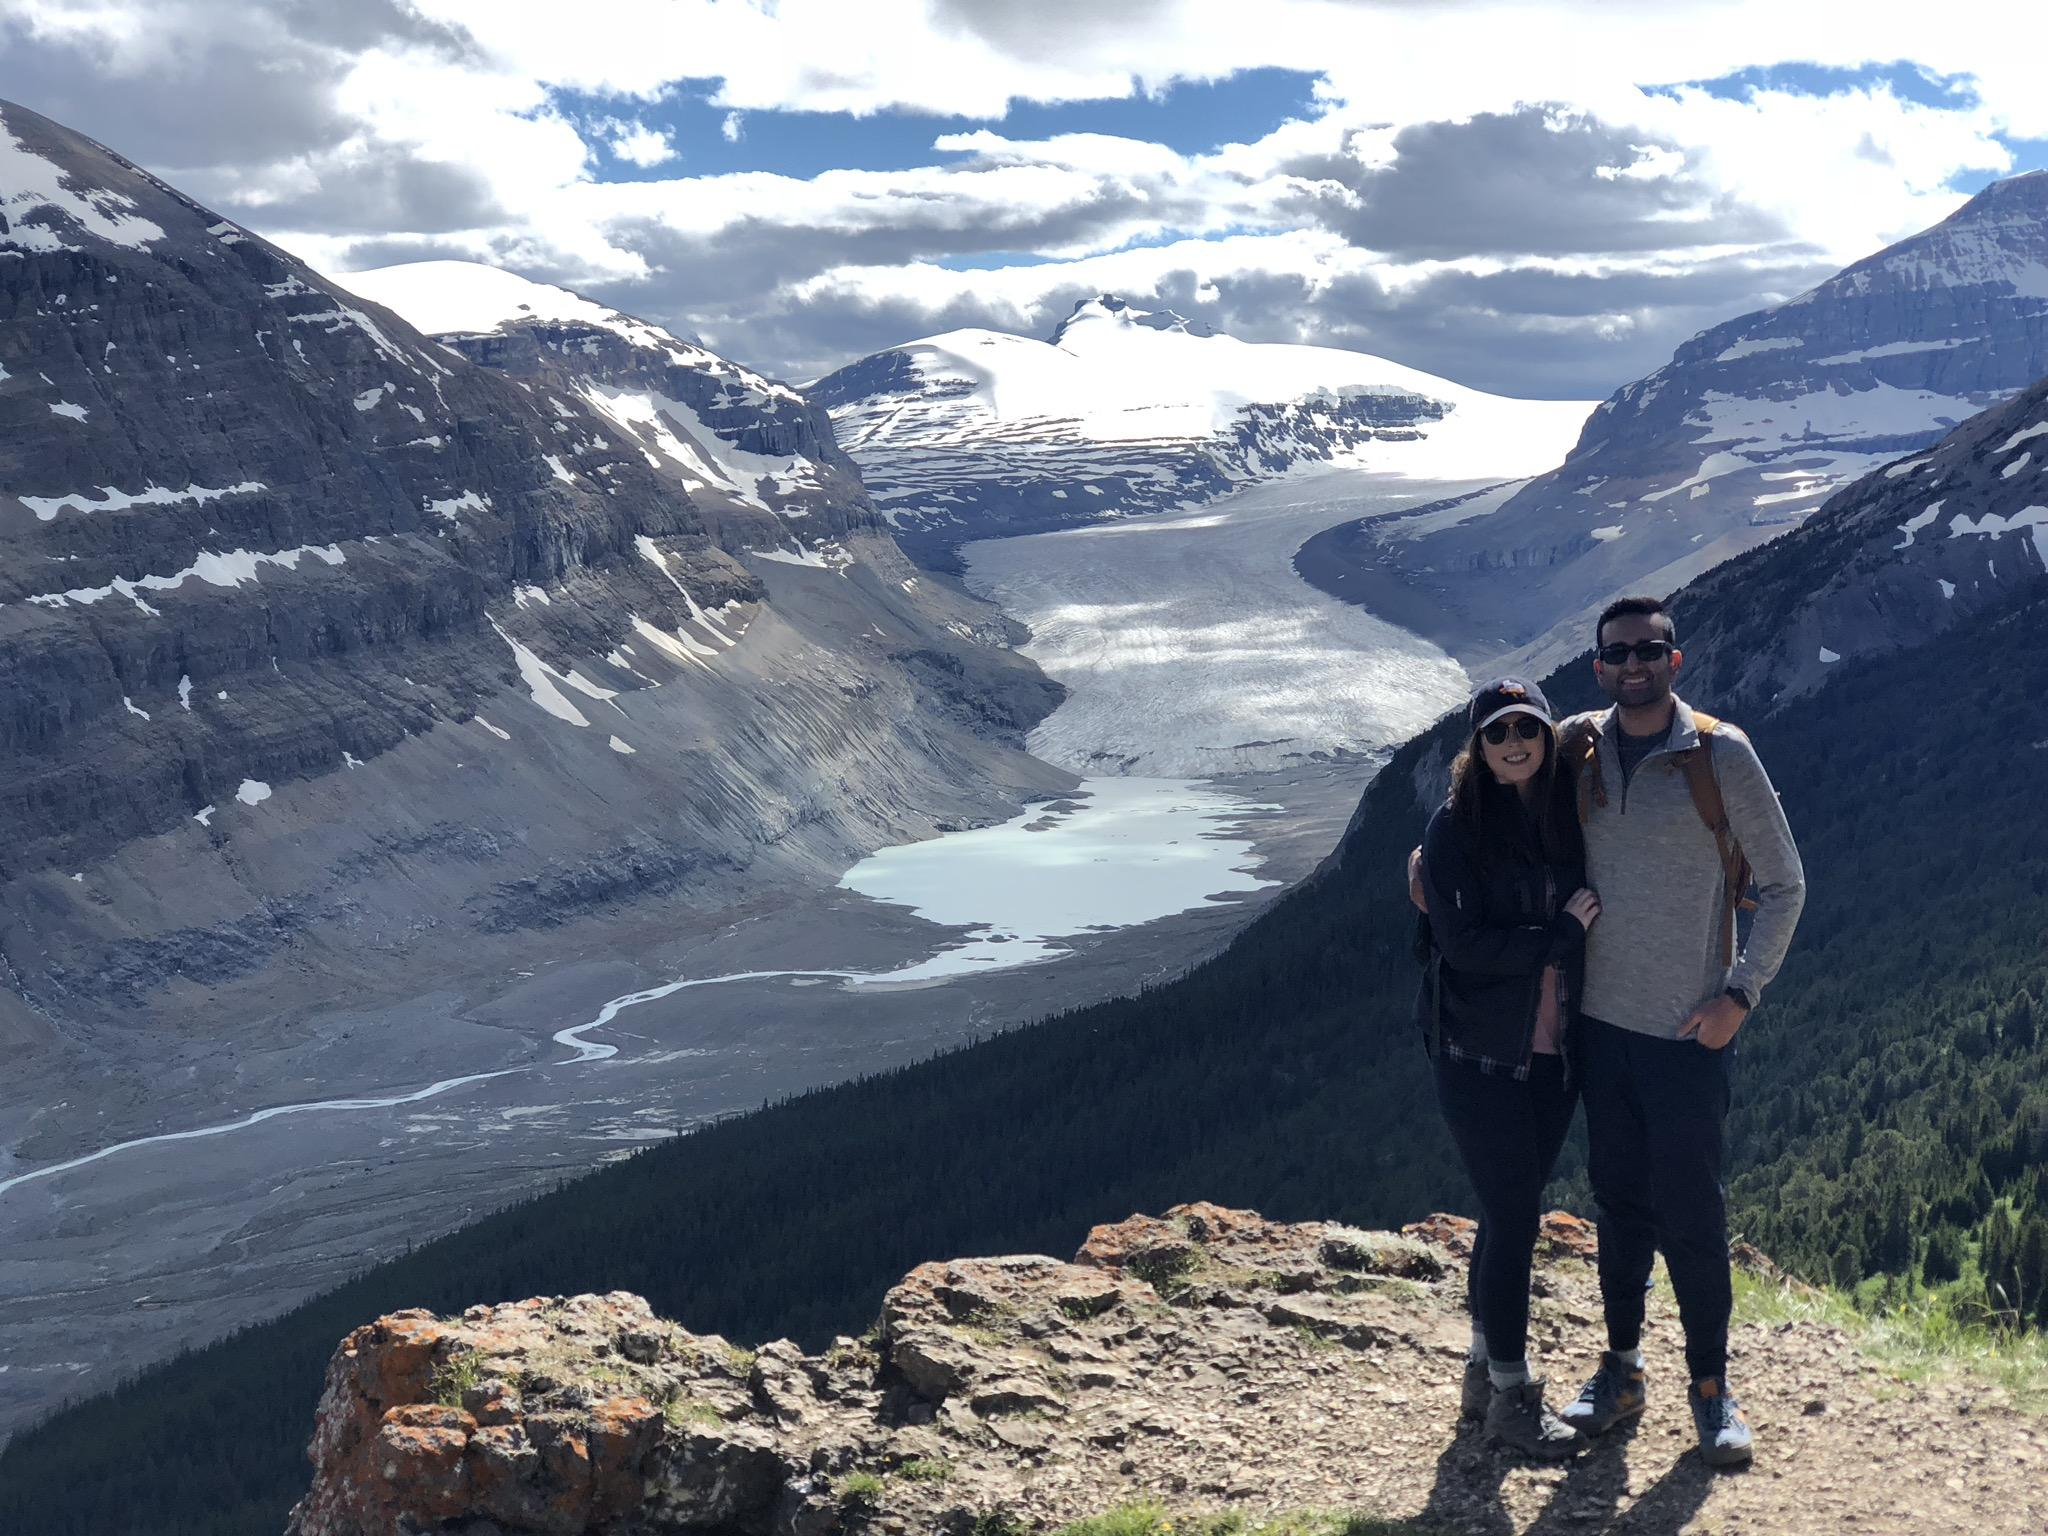 This view of the Athabasca Glacier in Banff National Park took our breath away!